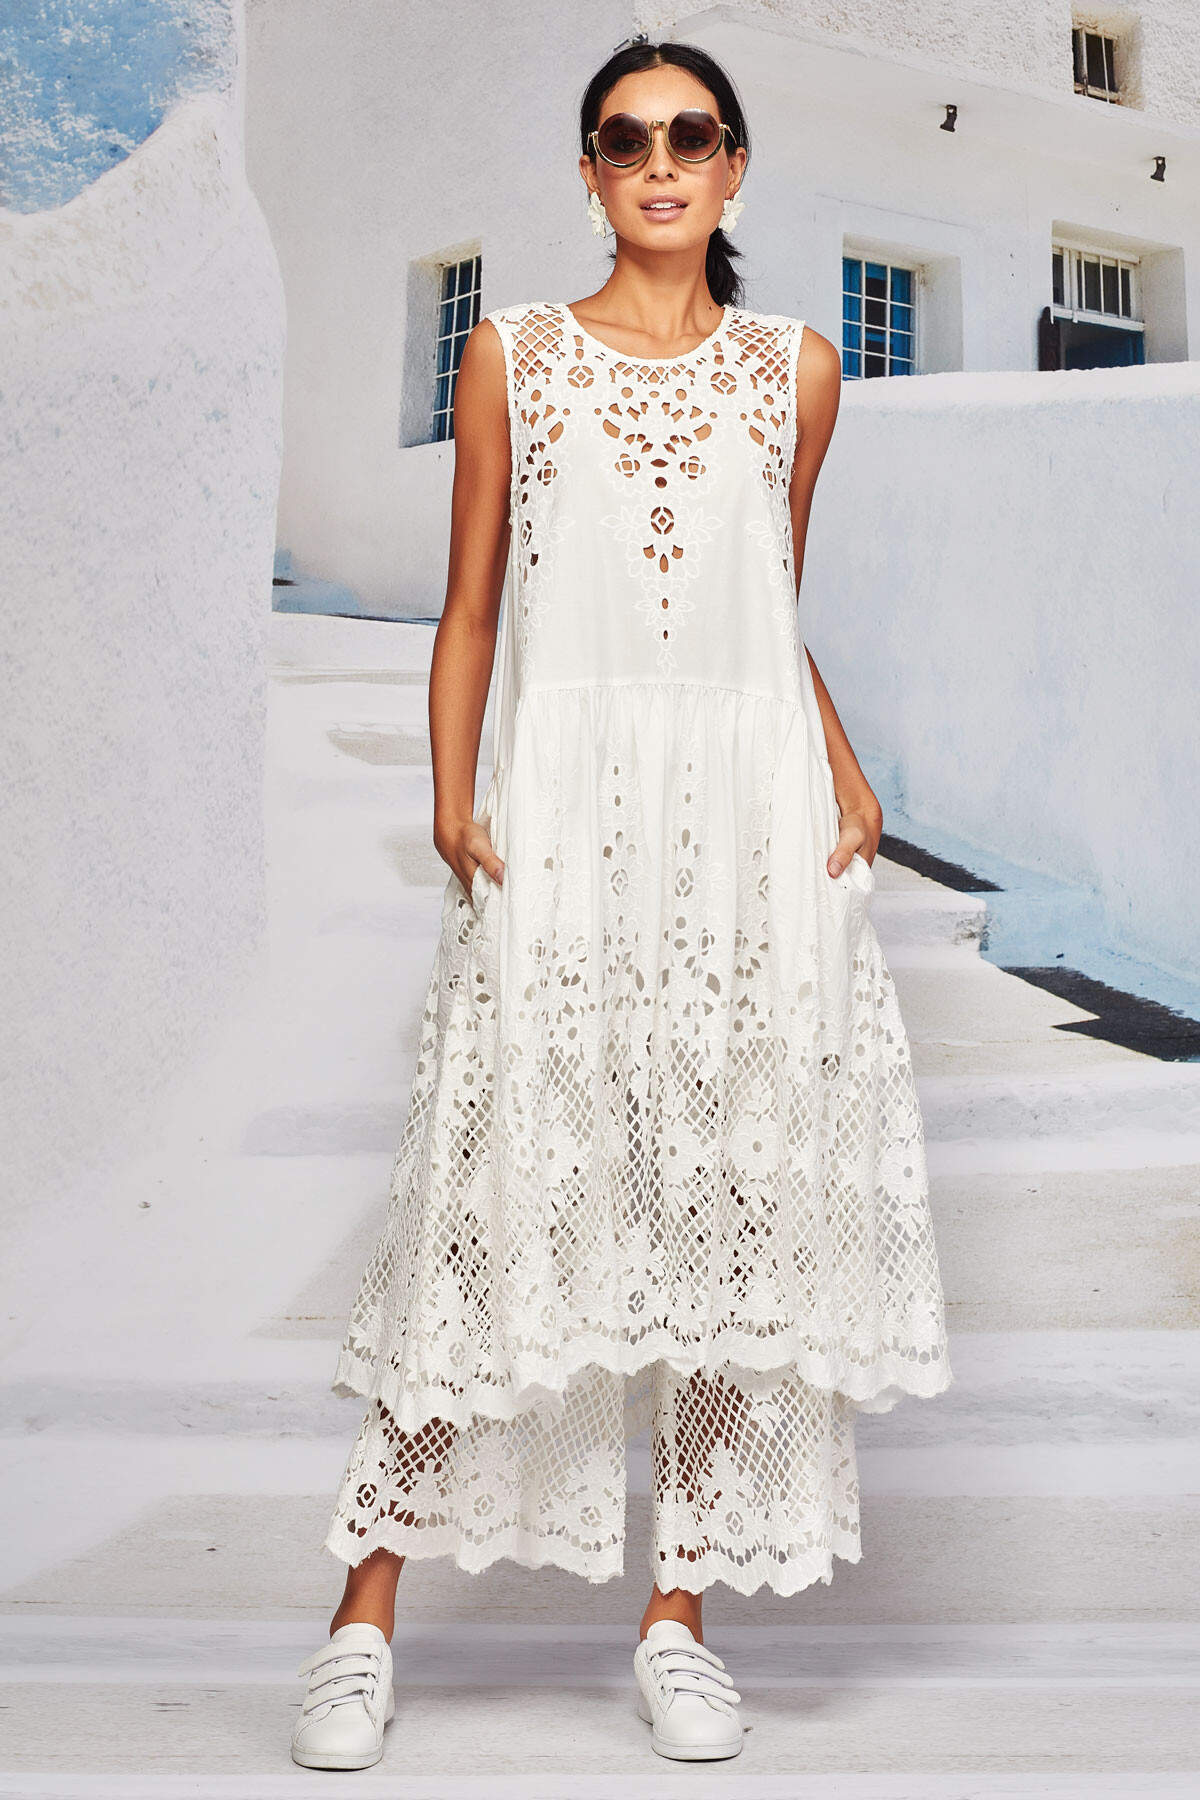 RUN WILD DRESS - Shop by Style-Dresses : Home - TRELISE COOPER SUMMER 19